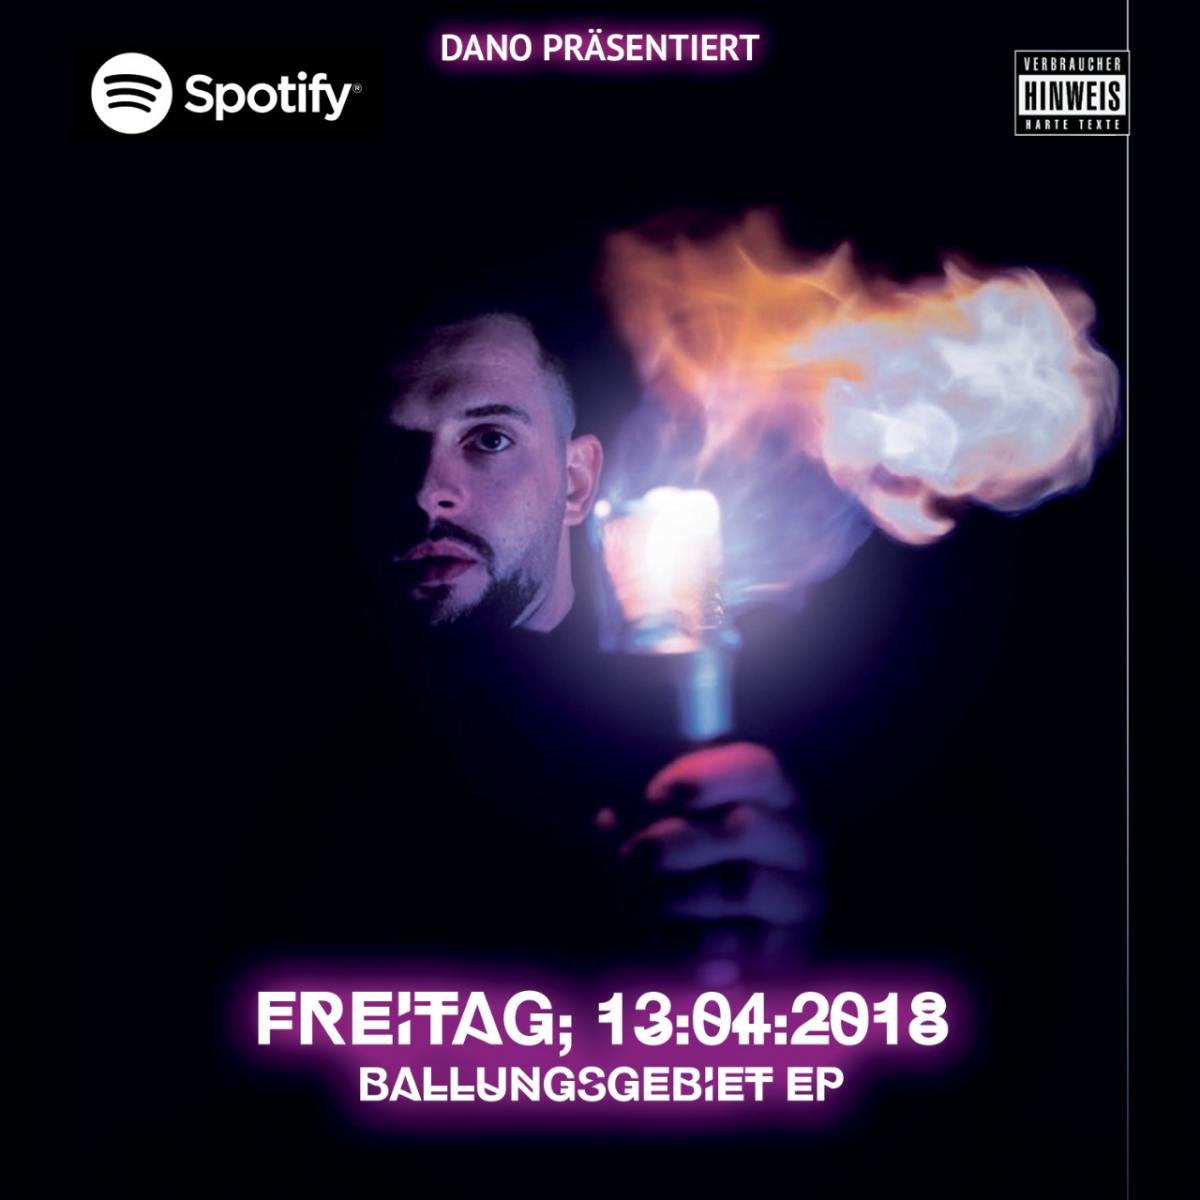 Upcoming: DANO - BALLUNGSGEBIET EP (SNIPPET)